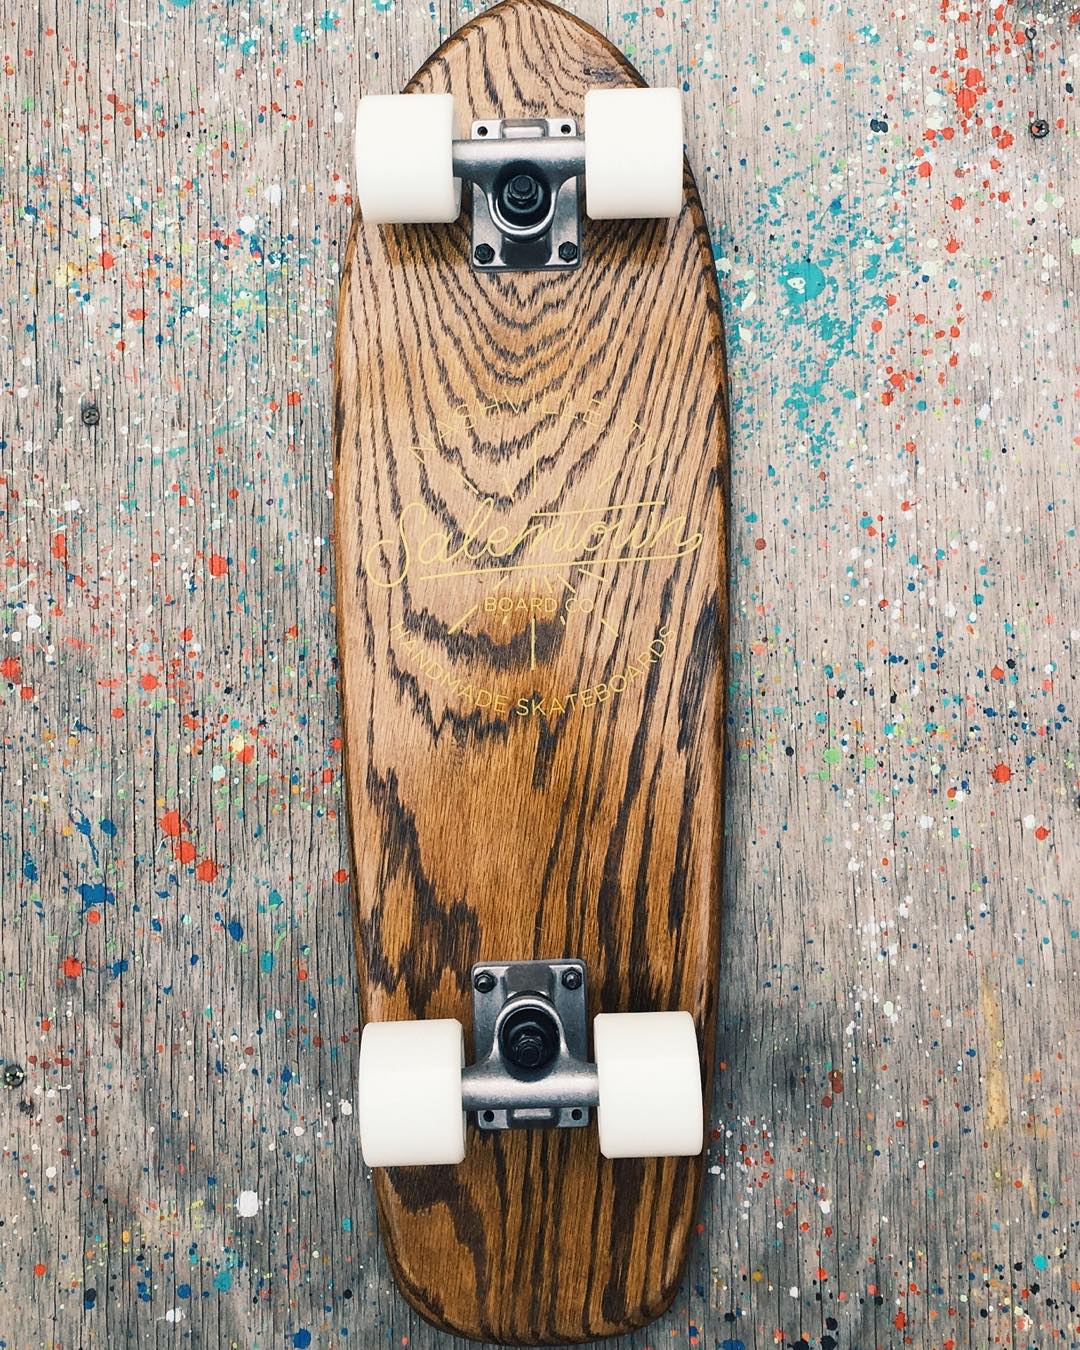 Sometimes simple is better. #handmadeskateboard